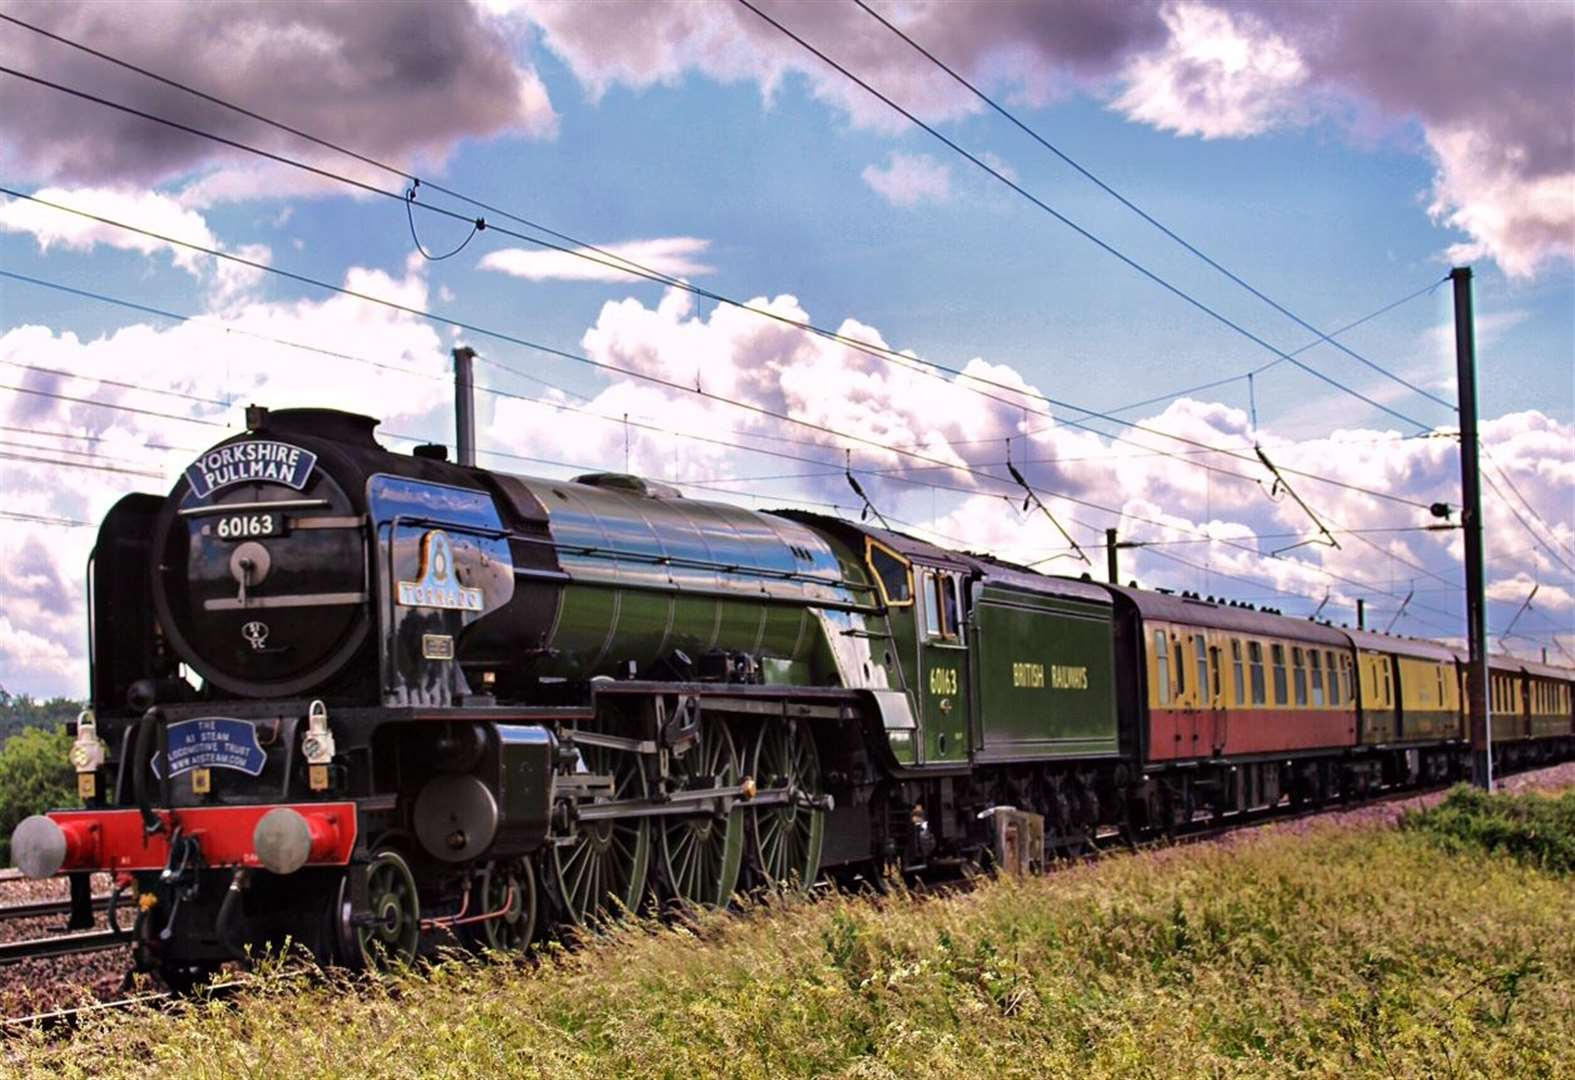 Where to be to see the Tornado steam locomotive